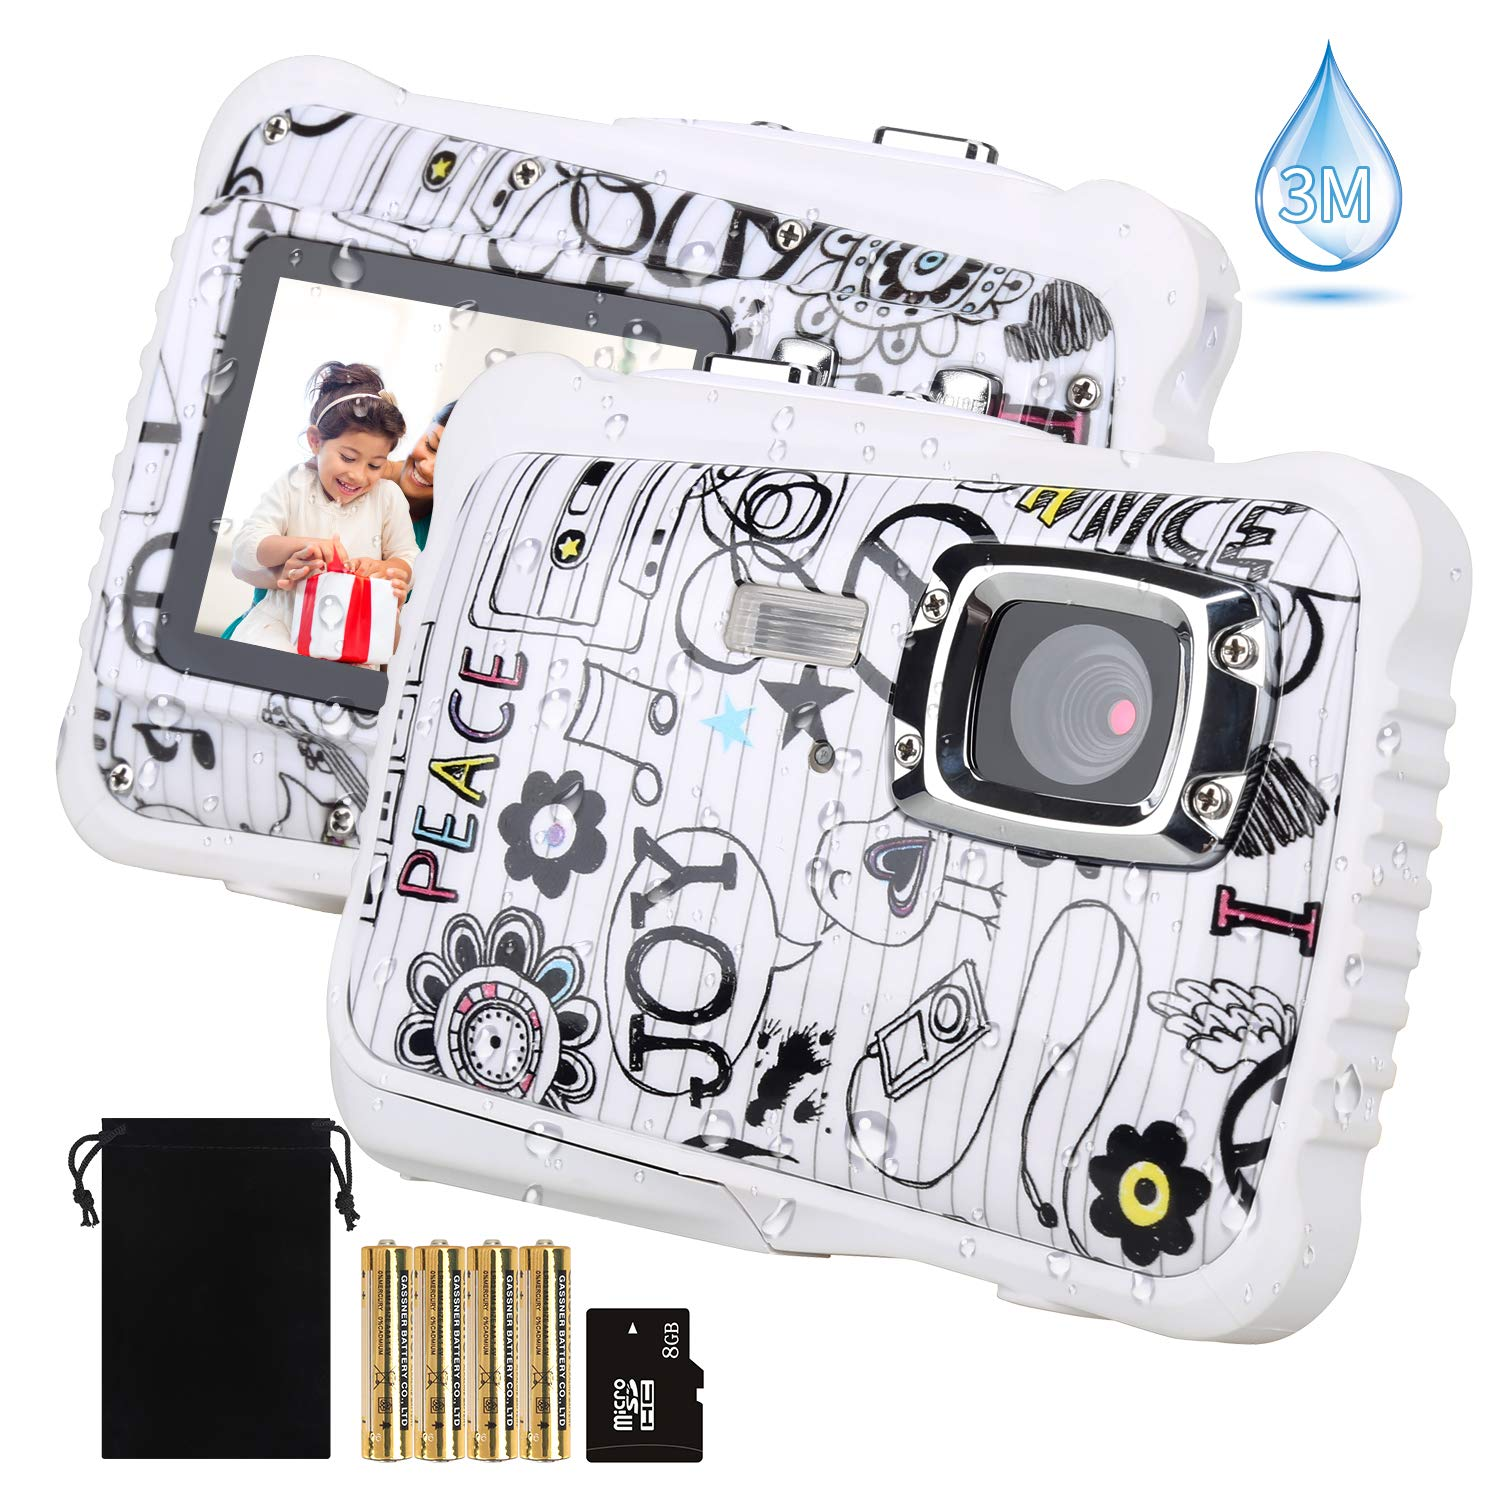 【2019 Newest Kids Camera】 Kids Camera, Waterproof Digital Camera for Children, 12MP HD Underwater Camcorder with 3M Waterproof, 2.0 Inch LCD Screen, 8X Digital Zoom, Flash Mic and 8G SD Card by UNIONDA